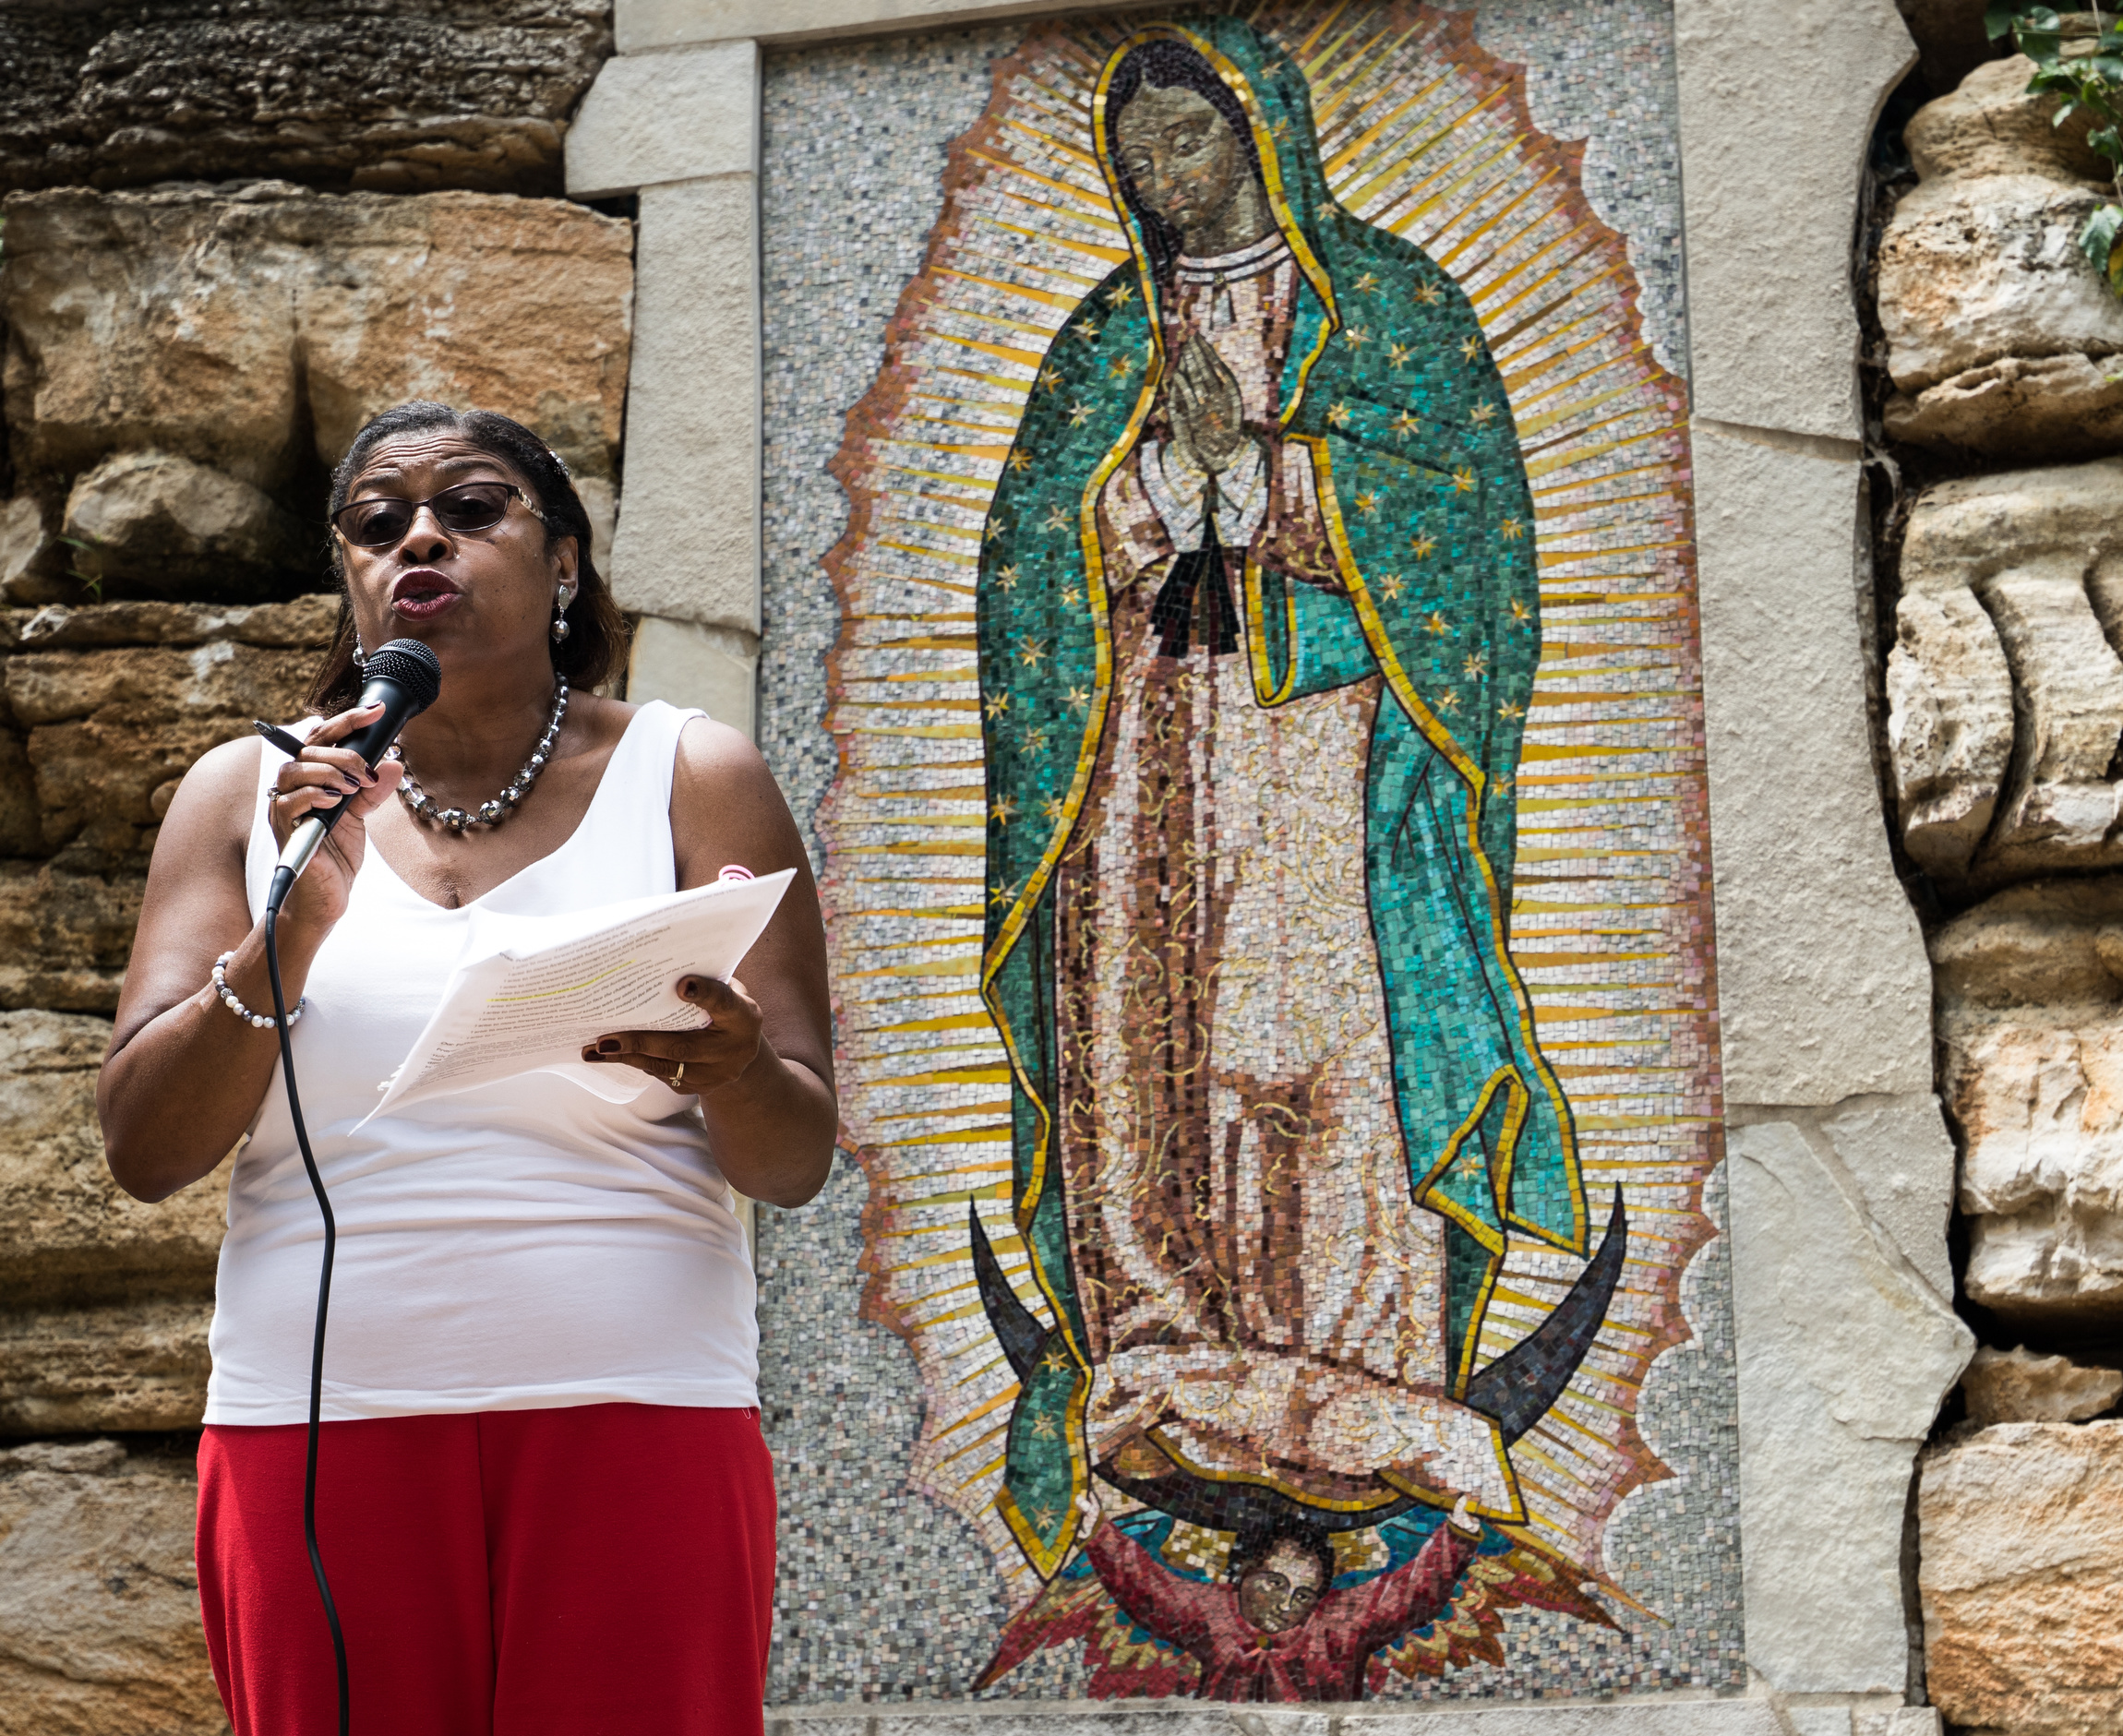 A woman speaks during an Aug. 5 ecumenical prayer service at grotto at Our Lady of Guadalupe Church in Ferguson, Mo. The service commemorated the first anniversary of the shooting death of 18-year-old Michael Brown. (CNS photo/Weston Kenney, St. Louis Review)